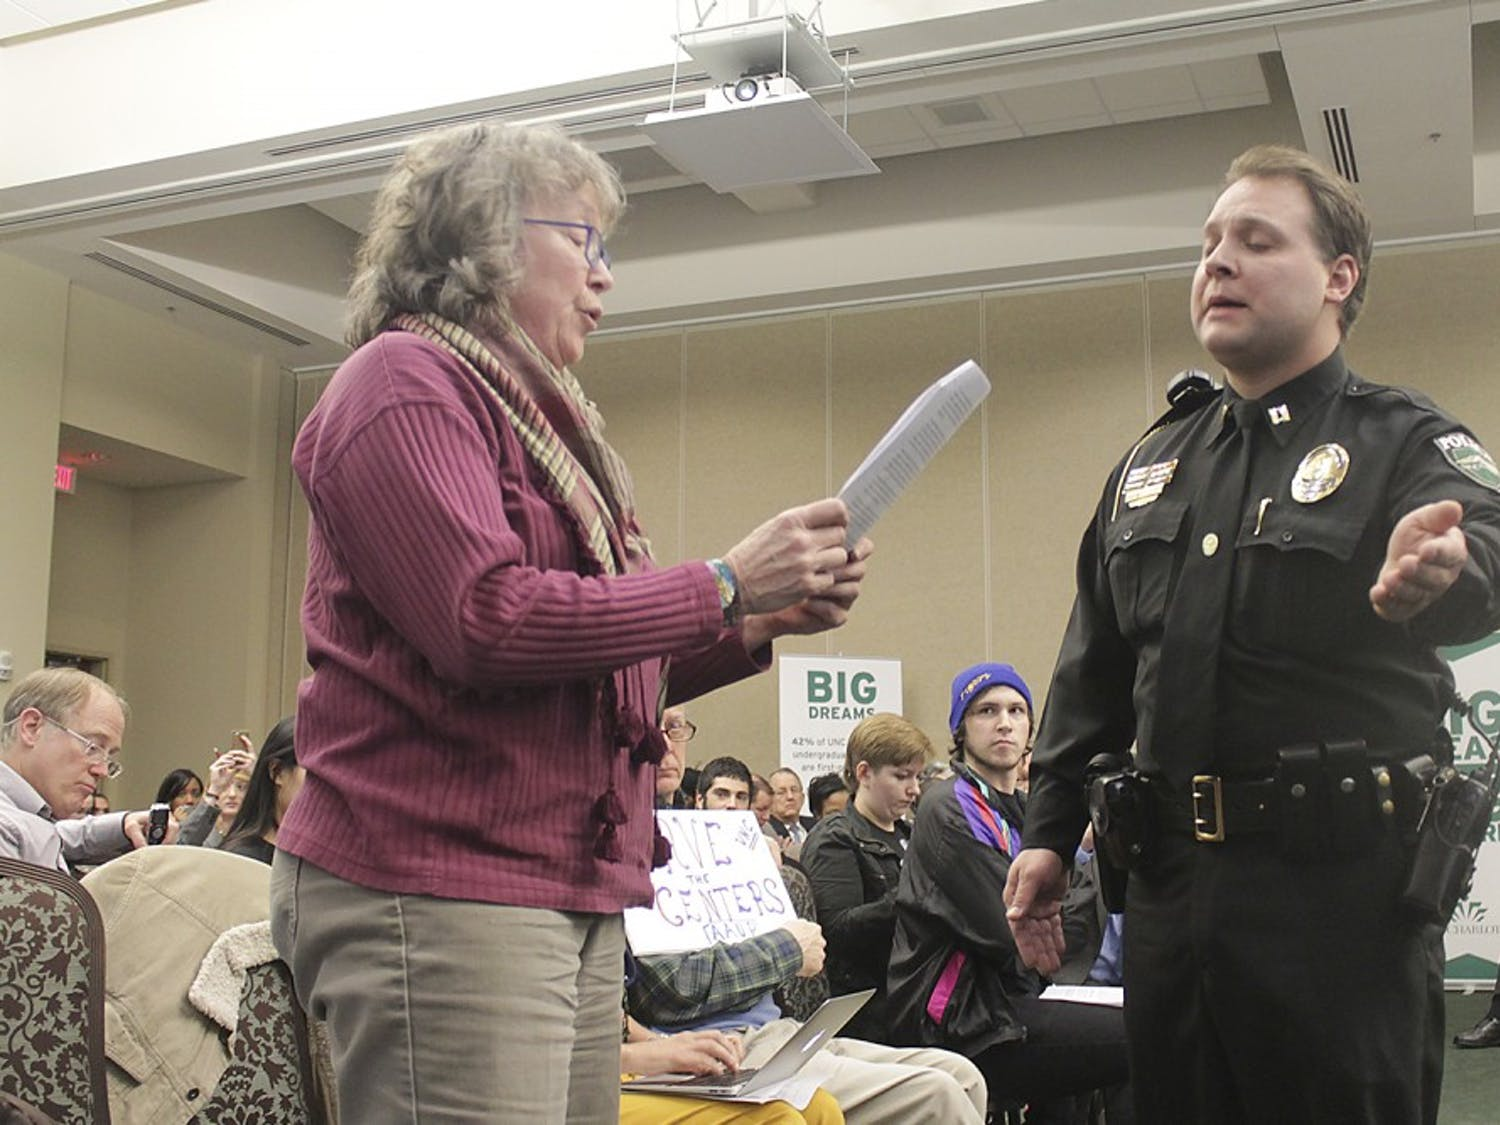 UNC geography professor Altha Cravey reads aloud a statement in support of the poverty center at the UNC-system Board of Governors meeting on Friday, Feb. 27 in Charlotte. The board voted unanimously to shut down three centers.